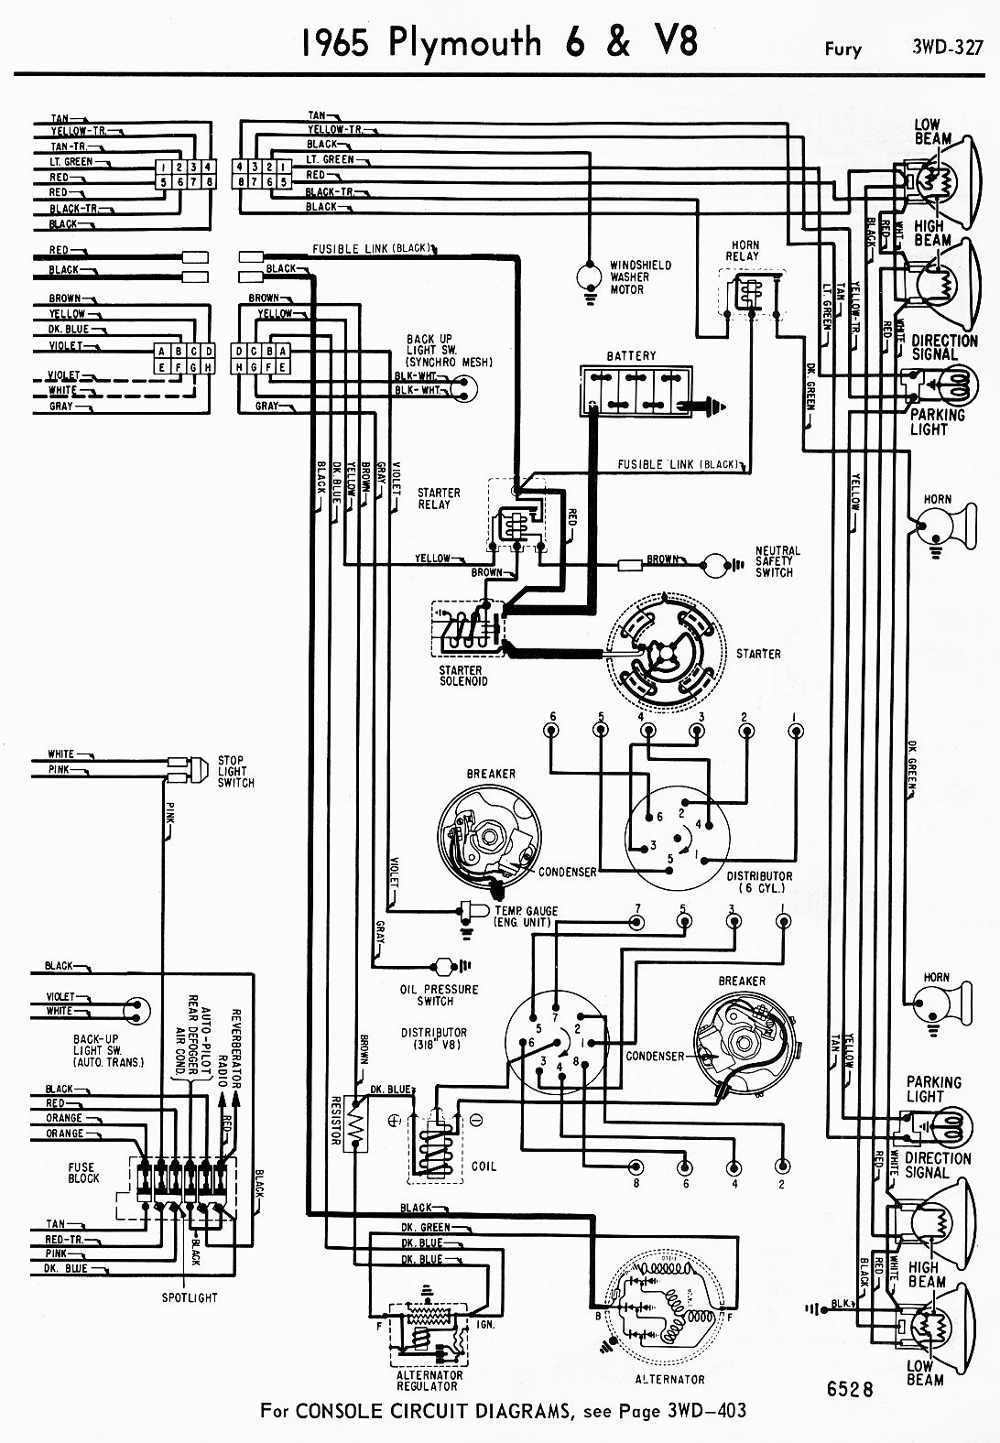 1968 Plymouth Fury Wiring Diagram Data Diagrams 1971 Mustang Convertible Example Electrical Rh Huntervalleyhotels Co 3